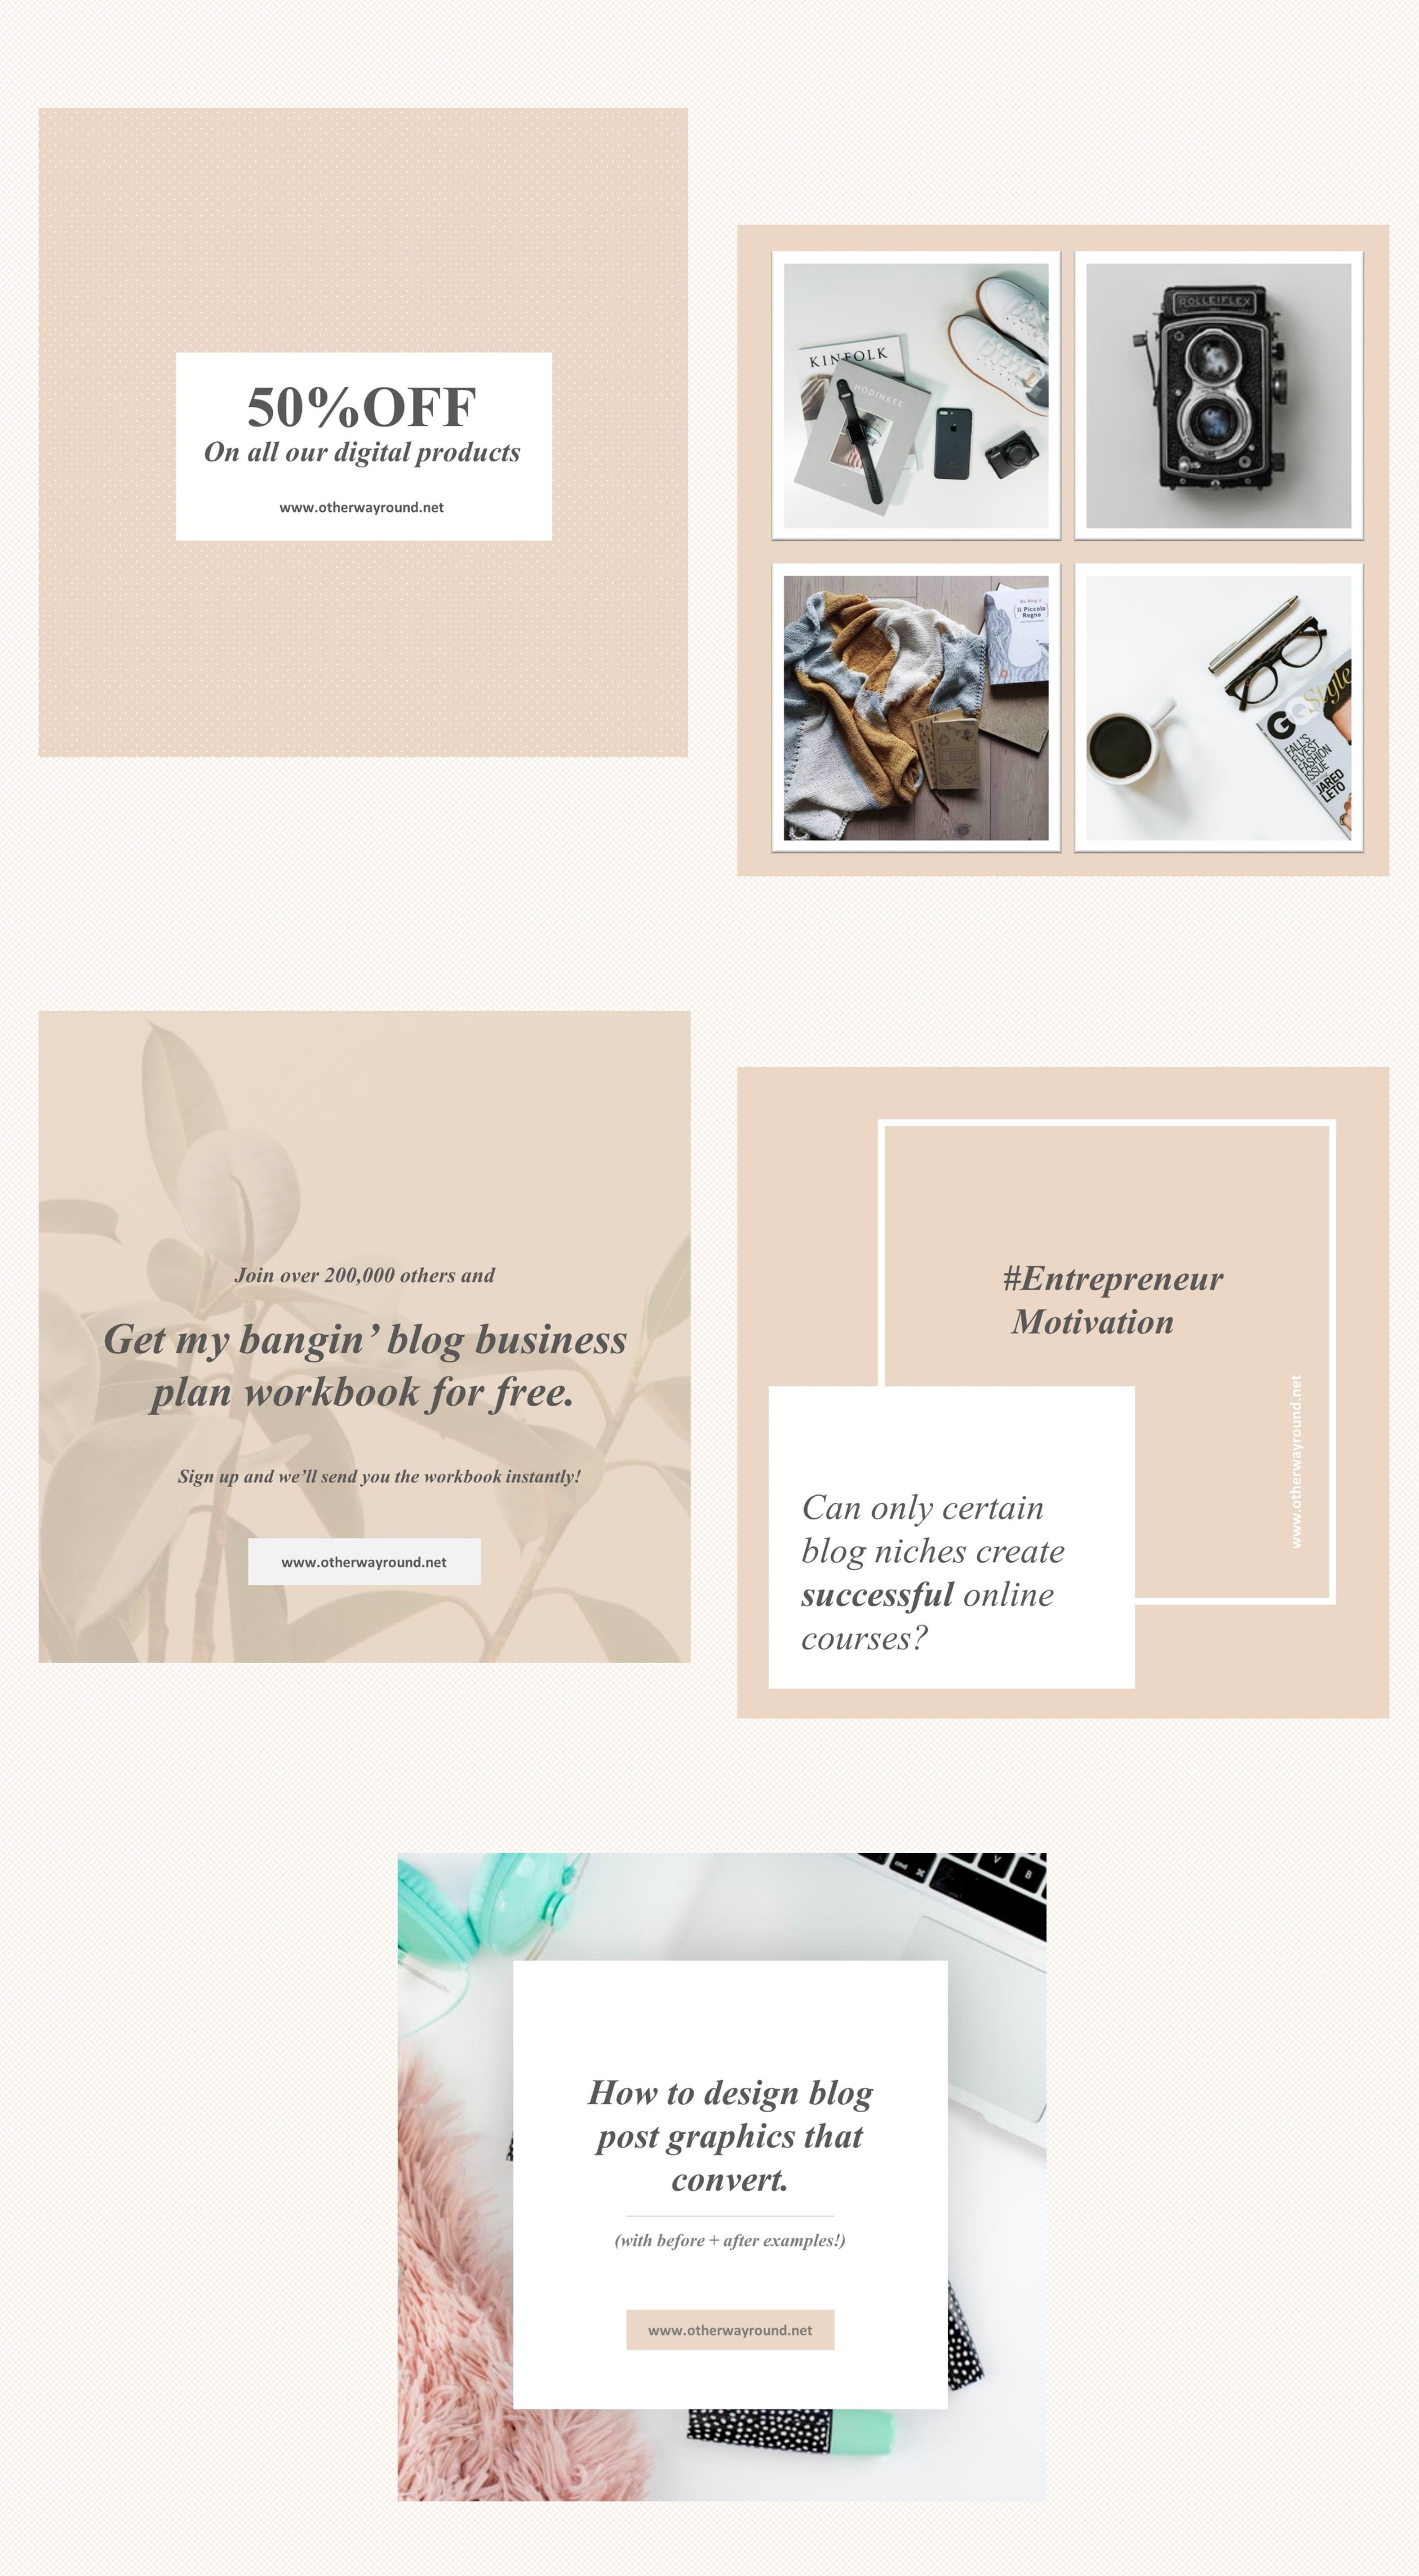 Stylish Instagram Feed Templates A Collection Of Free Instagram Templates To Take Your Content To The Nex Instagram Template Instagram Feed Blog Post Graphics